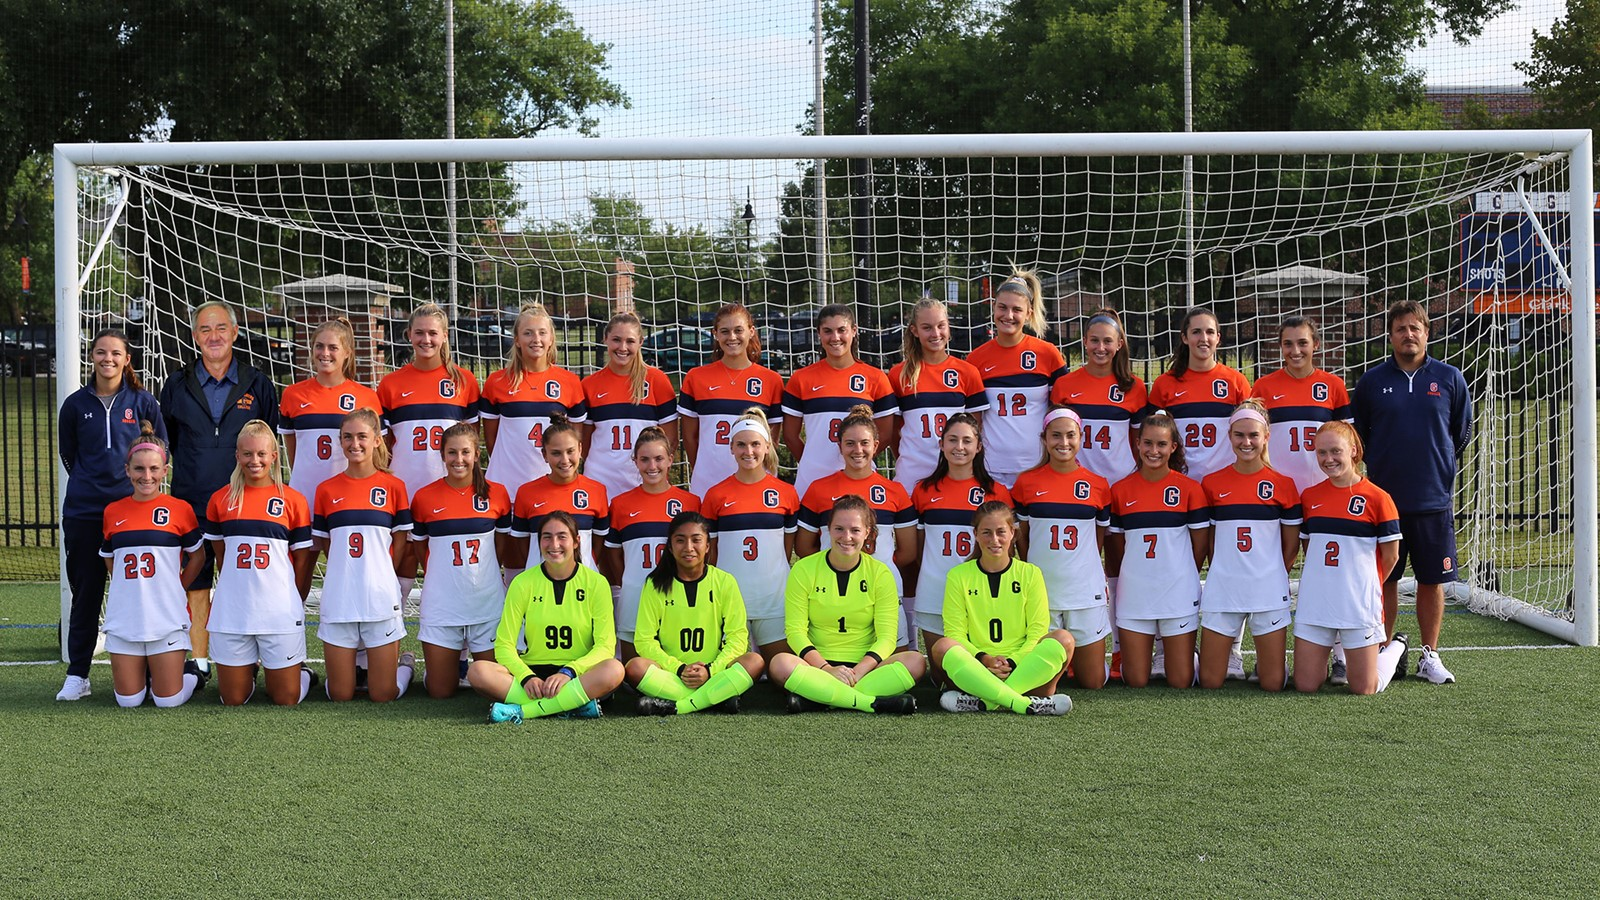 The Gettysburg College Women's Soccer team (Photo courtesy of Gettysburg College Athletics)